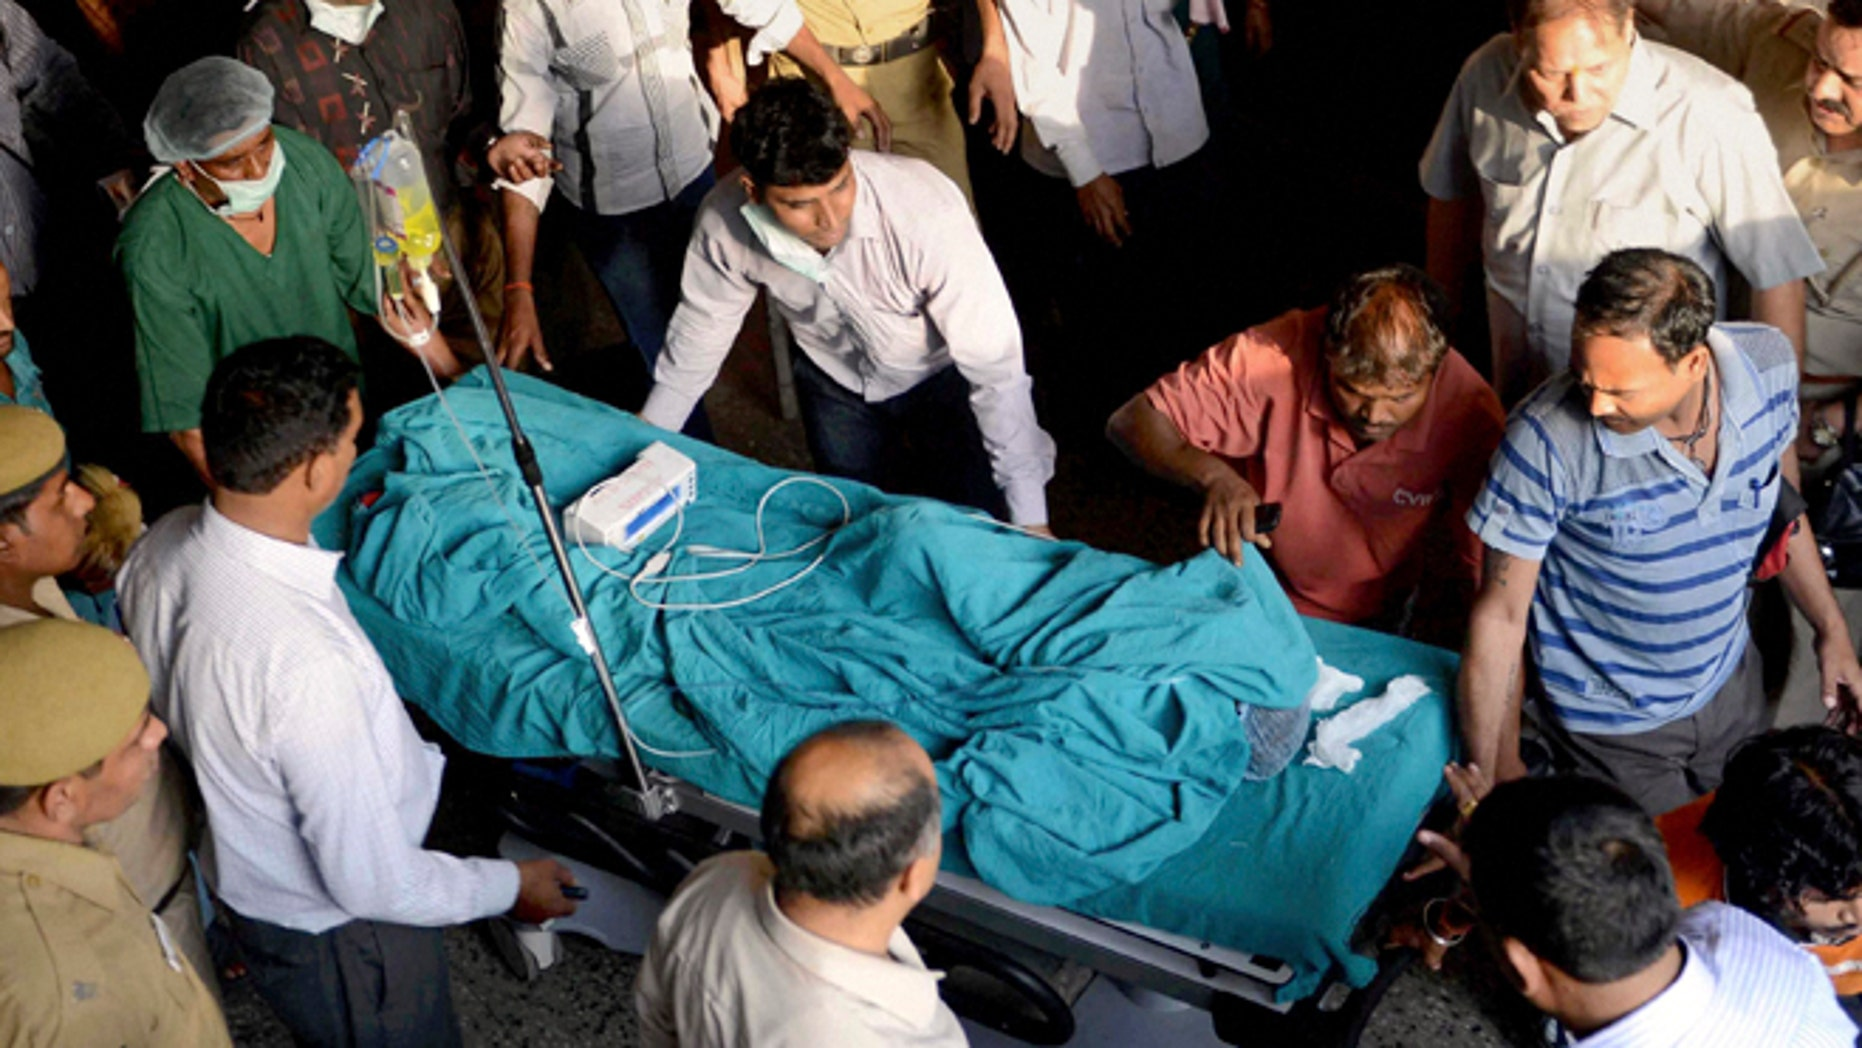 April 19: 5-year-old girl, according to police, is wheeled into a hospital for treatment after she was raped and tortured in New Delhi, India.